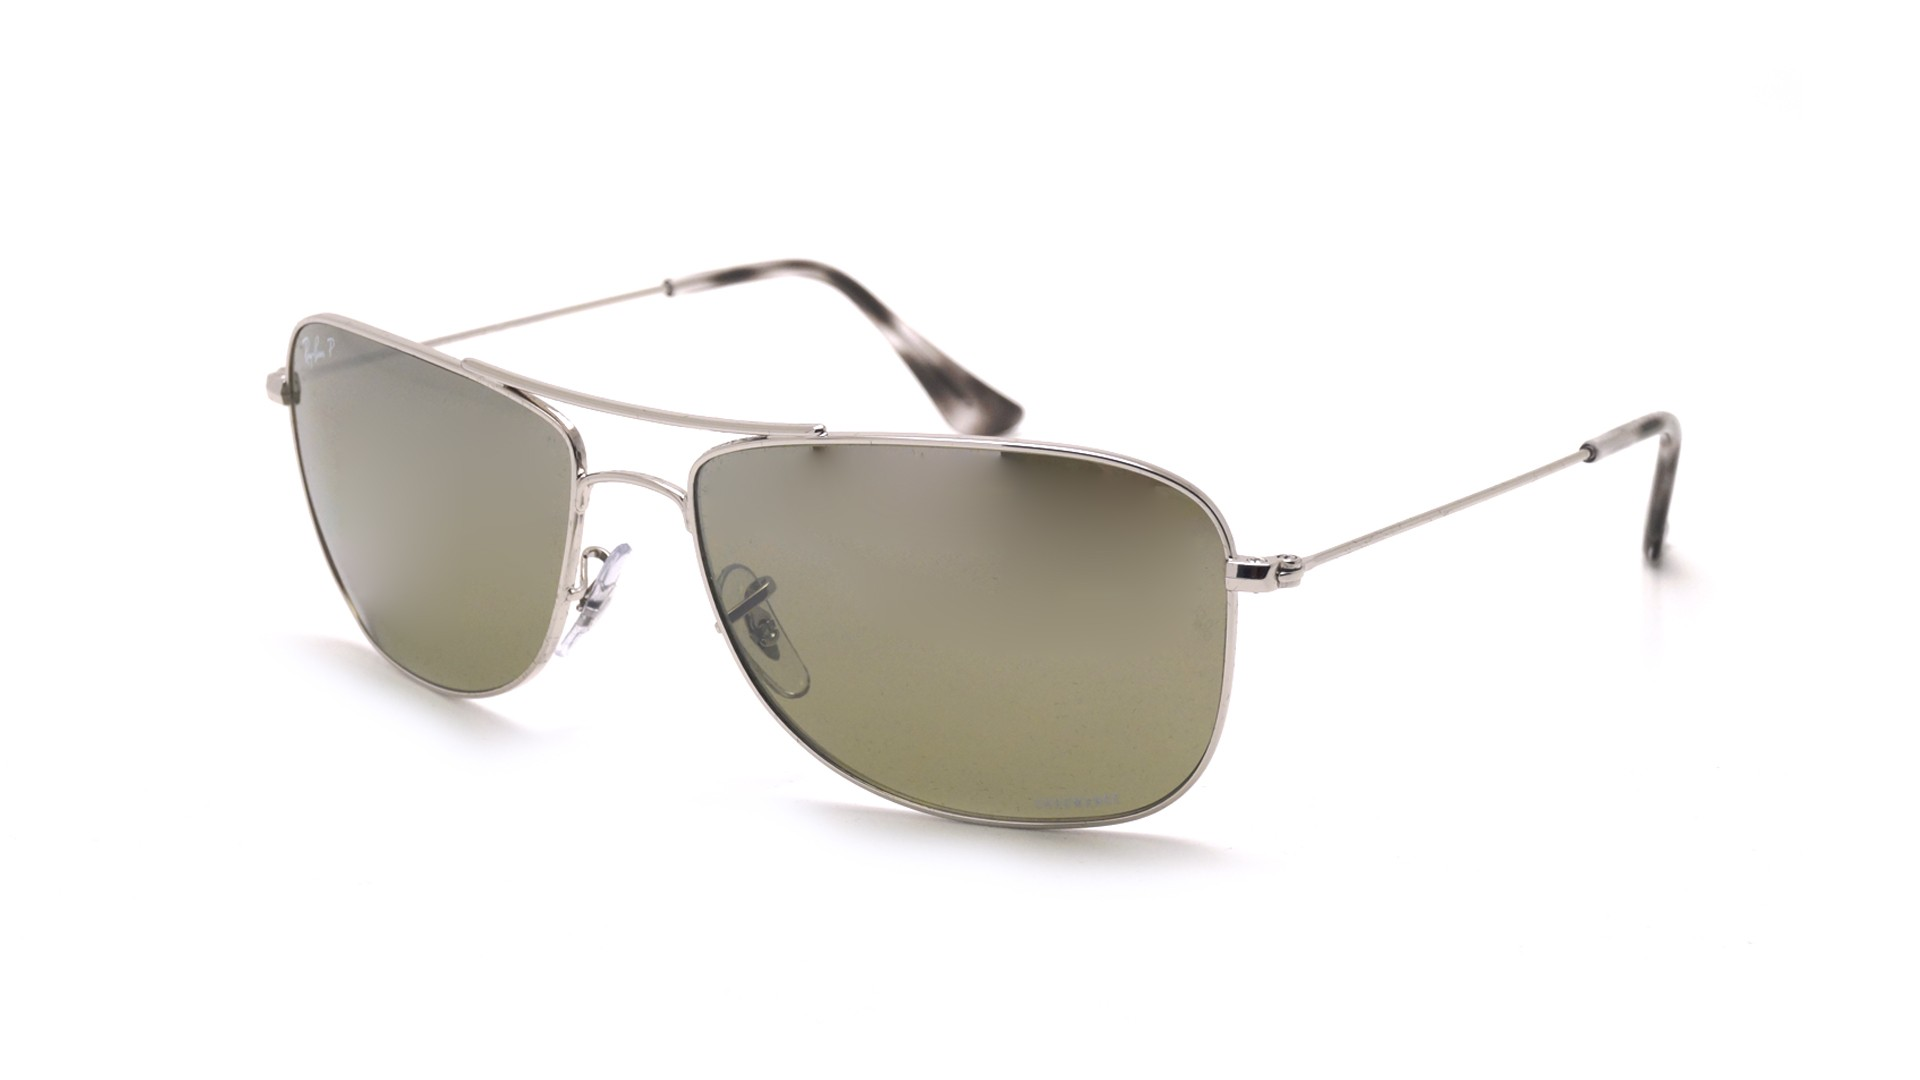 dec363f49c Sunglasses Ray-Ban RB3543 003 5J 59-16 Silver Chromance Medium Polarized  Gradient Mirror